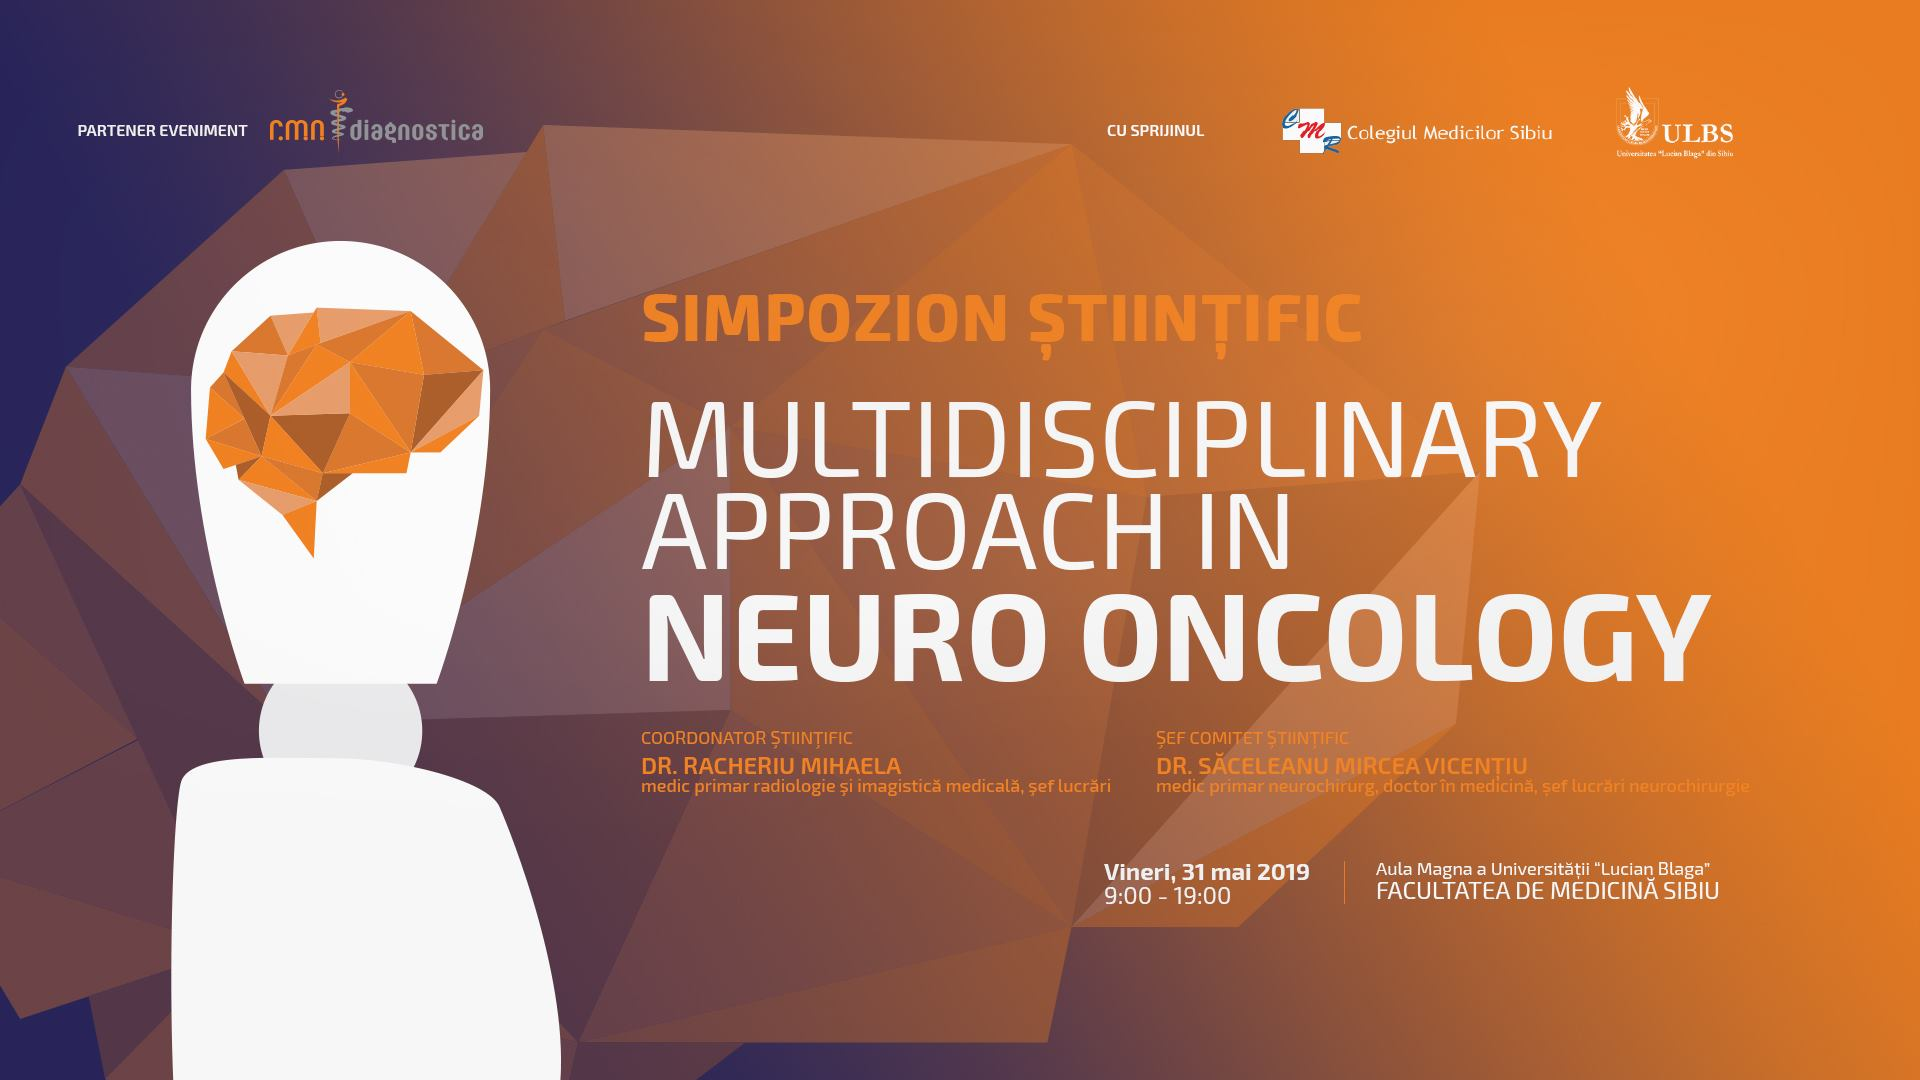 Multidisciplinary Approach in Neuro Oncology